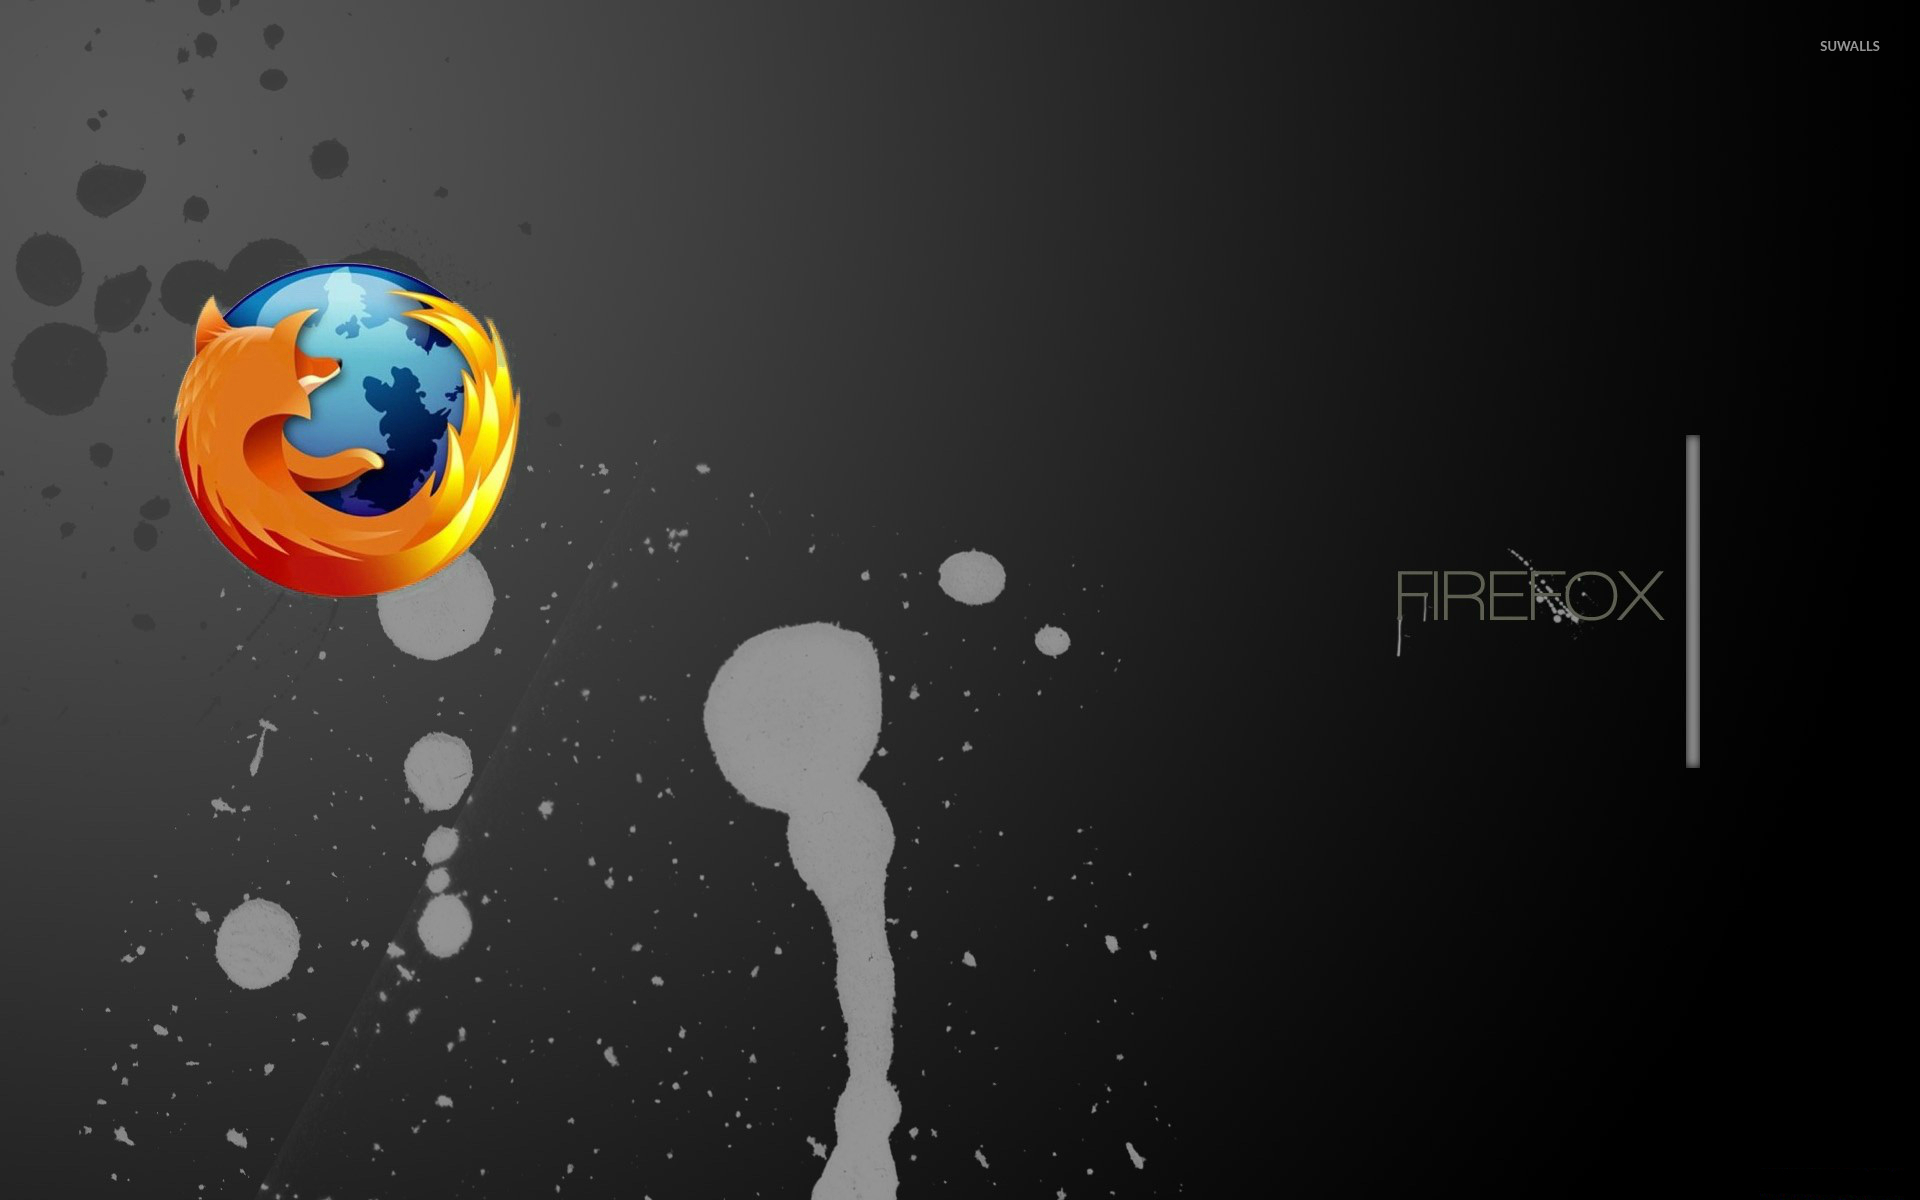 mozilla firefox on paint splash wallpaper - computer wallpapers - #49646